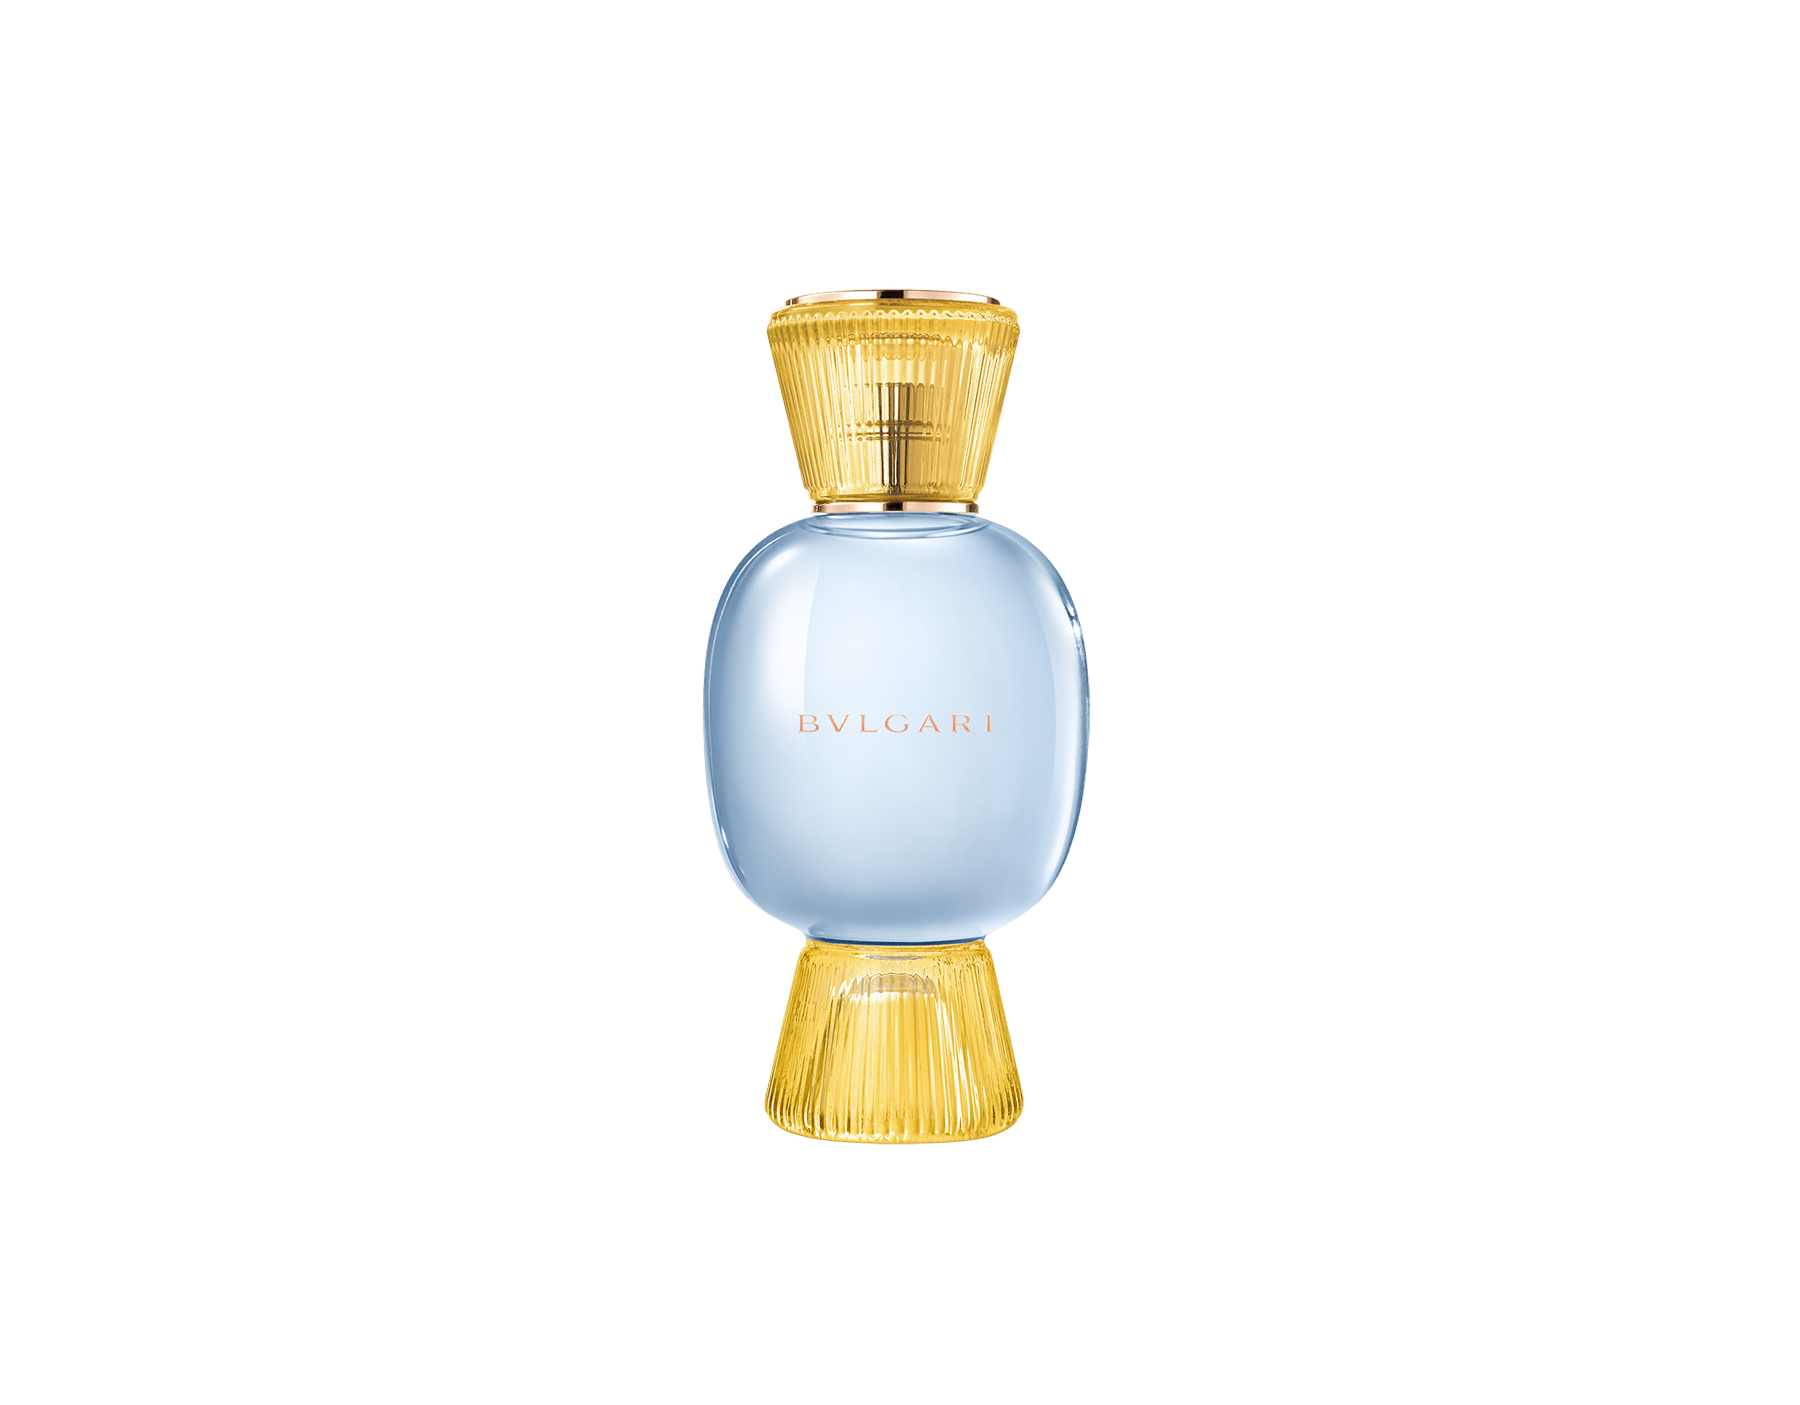 An exclusive perfume set, as bold and unique as you. The sparkling citrus Riva Solare Allegra Eau de Parfum blends with the addictive aroma of the Magnifying Vanilla Essence, creating an irresistible personalised women's perfume. Perfume-Set-Riva-Solare-Eau-de-Parfum-and-Vanilla-Magnifying image 2